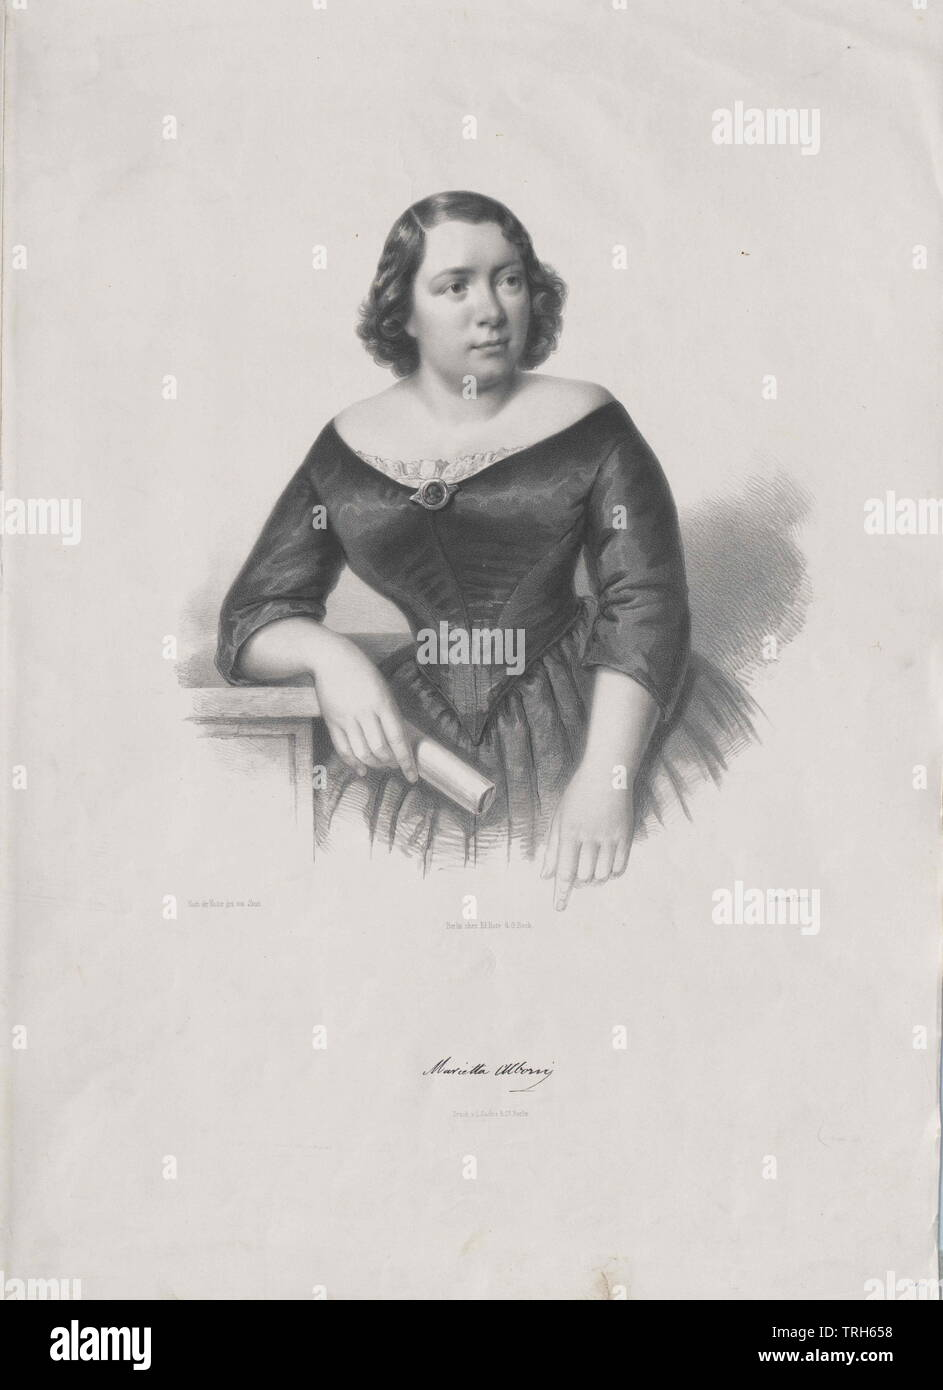 Alboni, Marietta, Italian opera singer (alto), member of the Viennese opera 1843-1845, if of the Parisian Italian opera,personality, celebrities, further, other, 19th century, 20th century, people, half-length, half length, woman, women, female, opera singer, opera singers, member, members, opera, operas, Additional-Rights-Clearance-Info-Not-Available - Stock Image